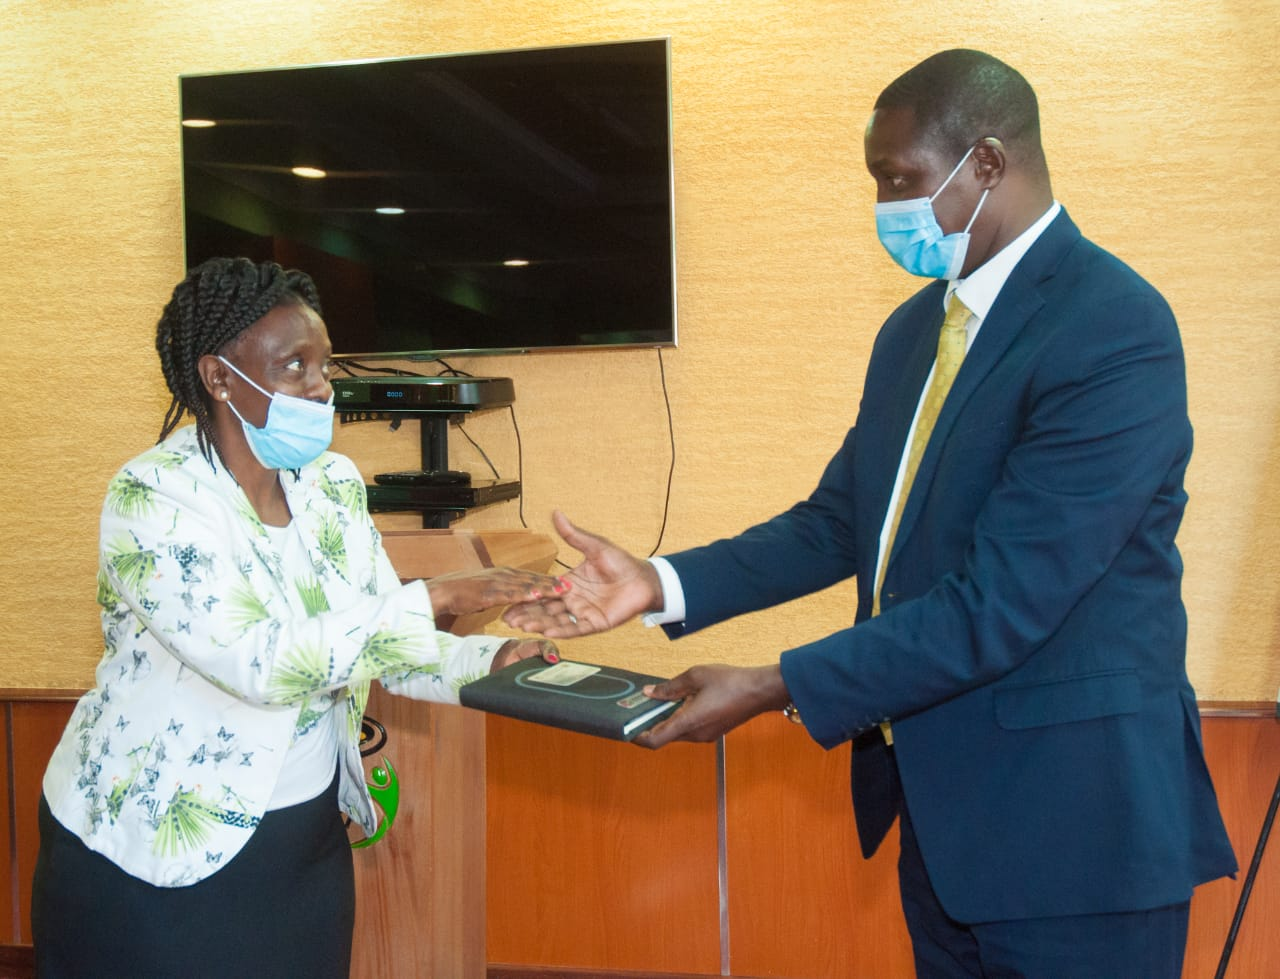 CRA Chairperson Presented a gift to IGRTC Ag. Chairman during the courtesy call meeting